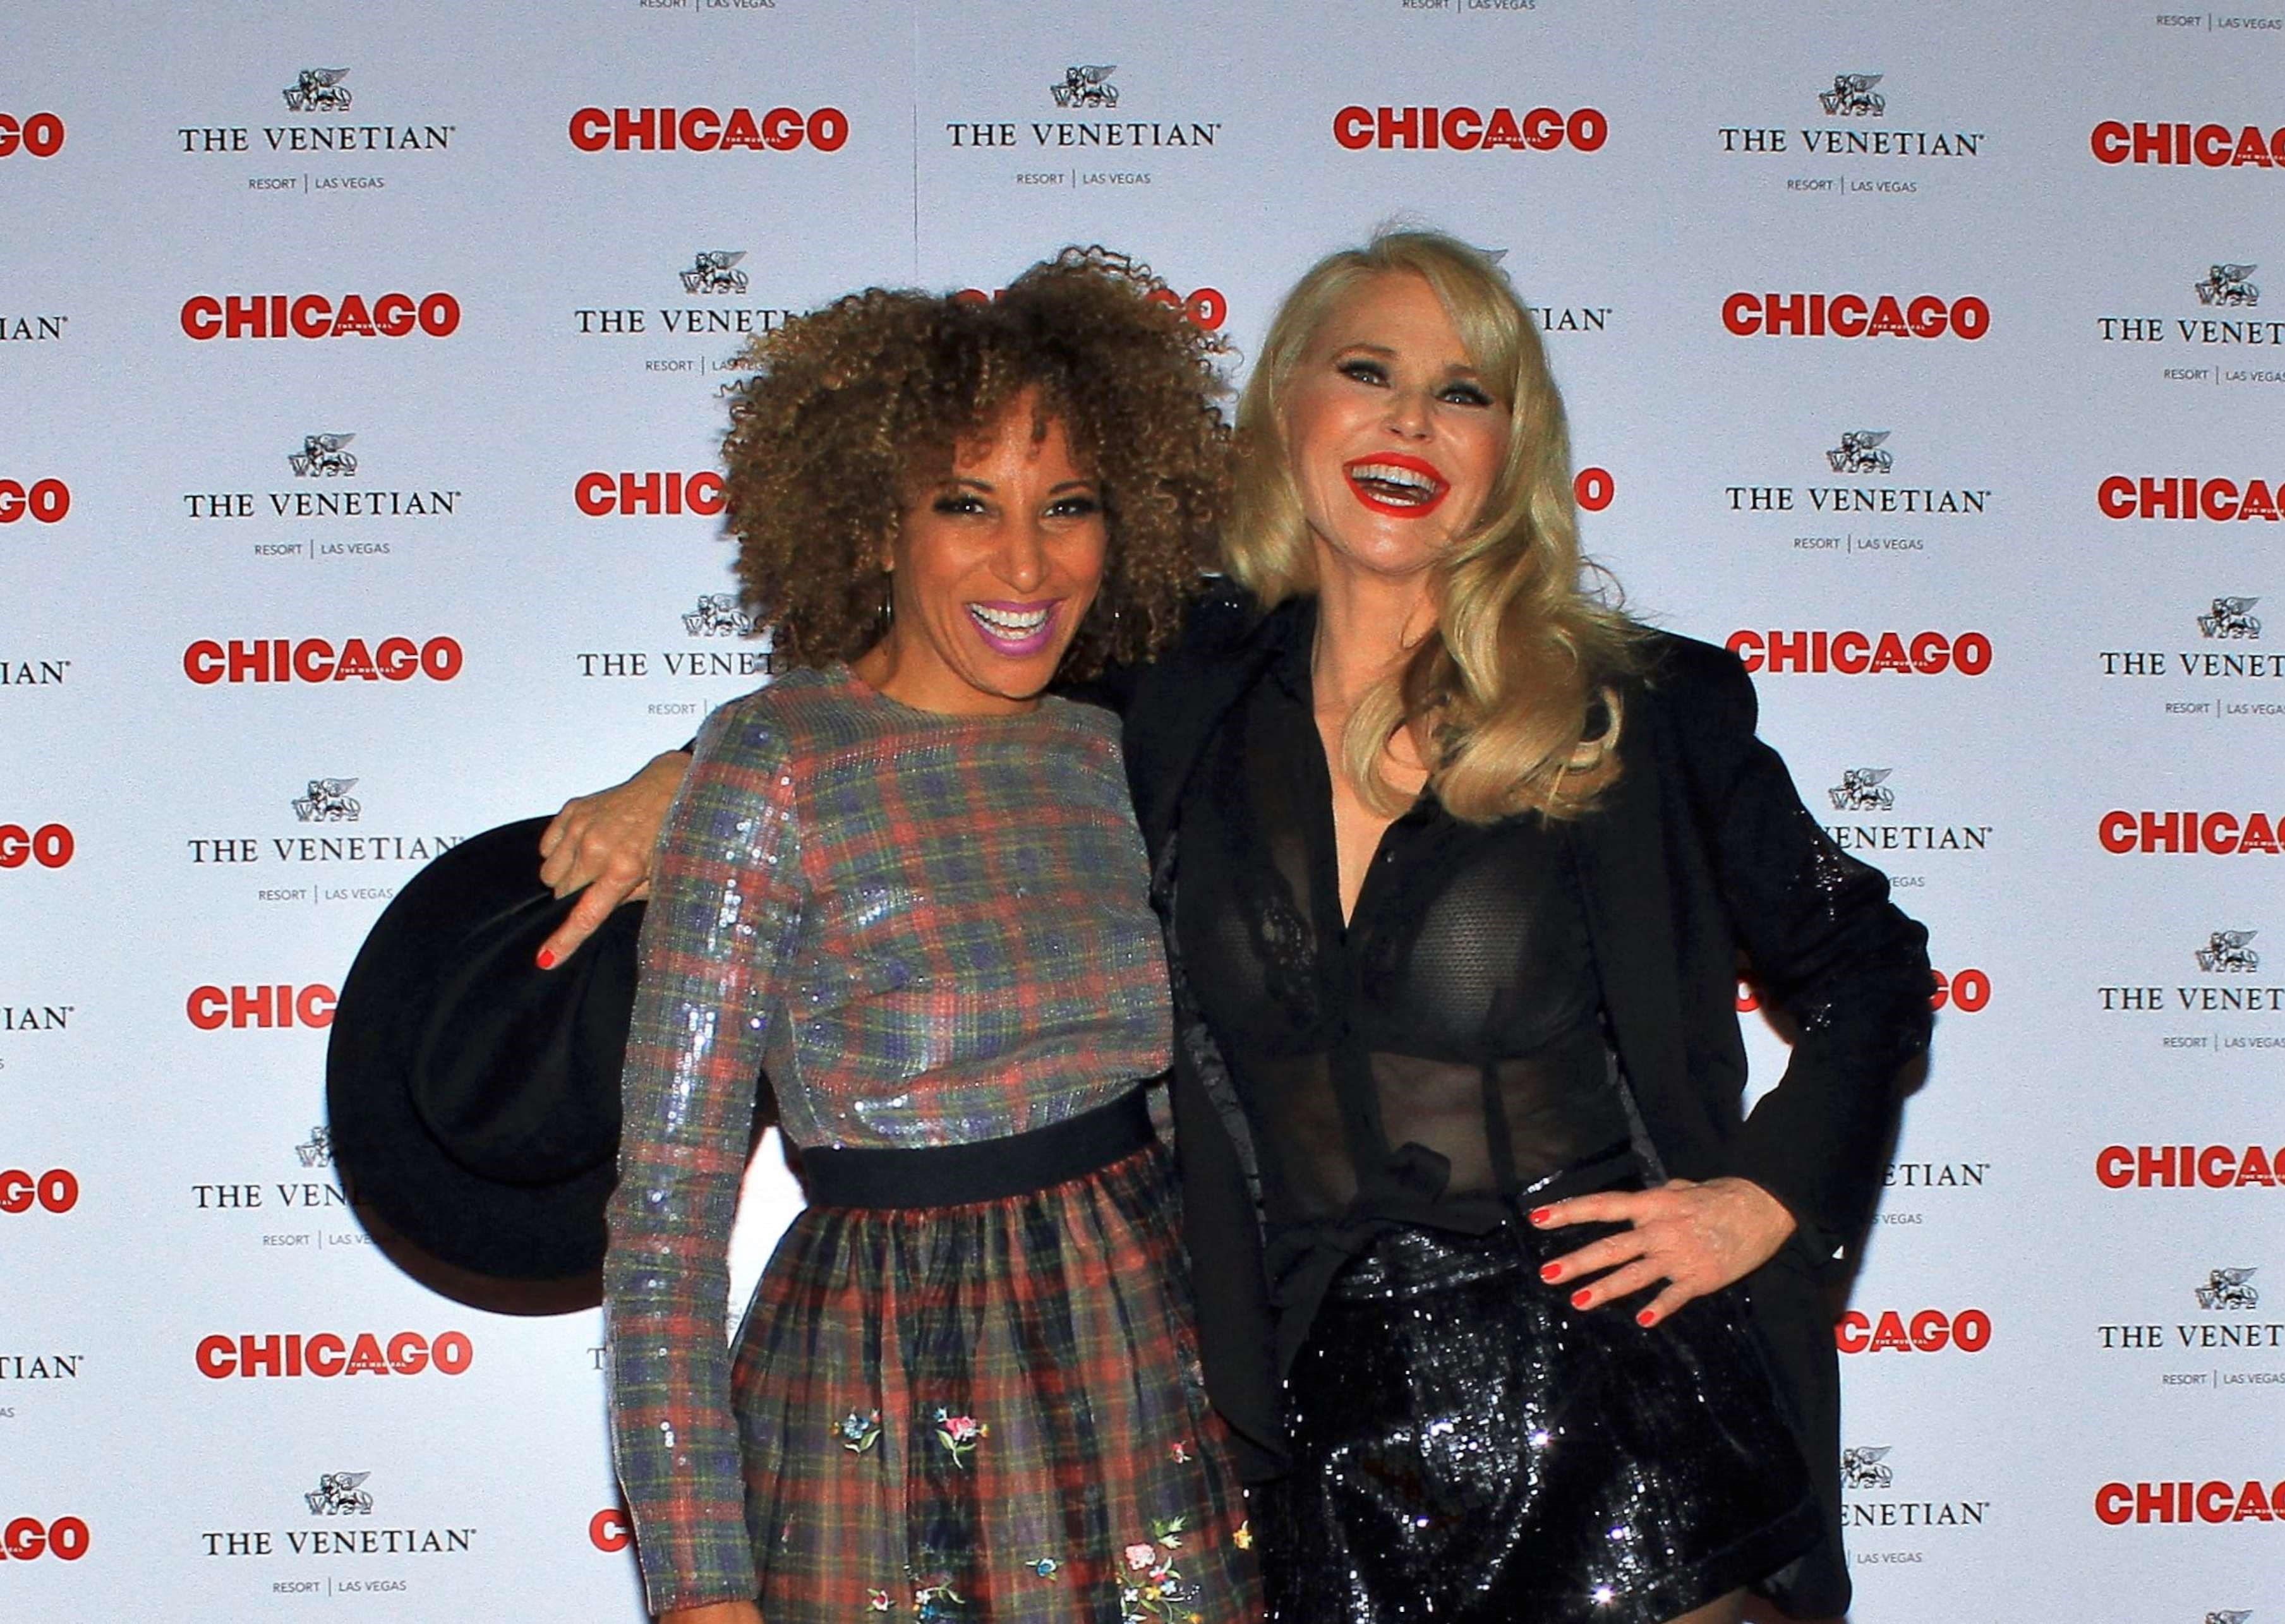 Christie Brinkley, Lana Gordon, Christie Brinkley 2019, Lana Gordon 2019, Actress Lana Gordon, Broadway Las Vegas 2019, Broadway Show Chicago Las Vegas 2019, Broadway Show in Las Vegas, Broadway Show Las Vegas, Celebrities 2019, Celebrity Interviews, Celebrity Interviews 2019, Celebrity News 2019, Chicago at The Venetian, Chicago at The Venetian 2019, Chicago Las Vegas Show Review, Chicago Show Las Vegas, Chris Yandek, Christie Brinkley 2019, Christie Brinkley Chicago 2019, Christie Brinkley in Chicago, Christie Brinkley Las Vegas 2019, Christie Brinkley Las Vegas Show Chicago, Christine Brinkley 2019 Las Vegas, Entertainment News 2019, Hollywood Interviews 2019, interview, Interviews, Lana Gordon, Lana Gordon Chicago, Las Vegas, Las Vegas 2019, Las Vegas Entertainment Scene 2019, Las Vegas Entertainment Shows 2019, Las Vegas News 2019, Las Vegas Strip, Las Vegas Strip 2019, Las Vegas Strip Shows 2019, News 2019, Singer Lana Gordon